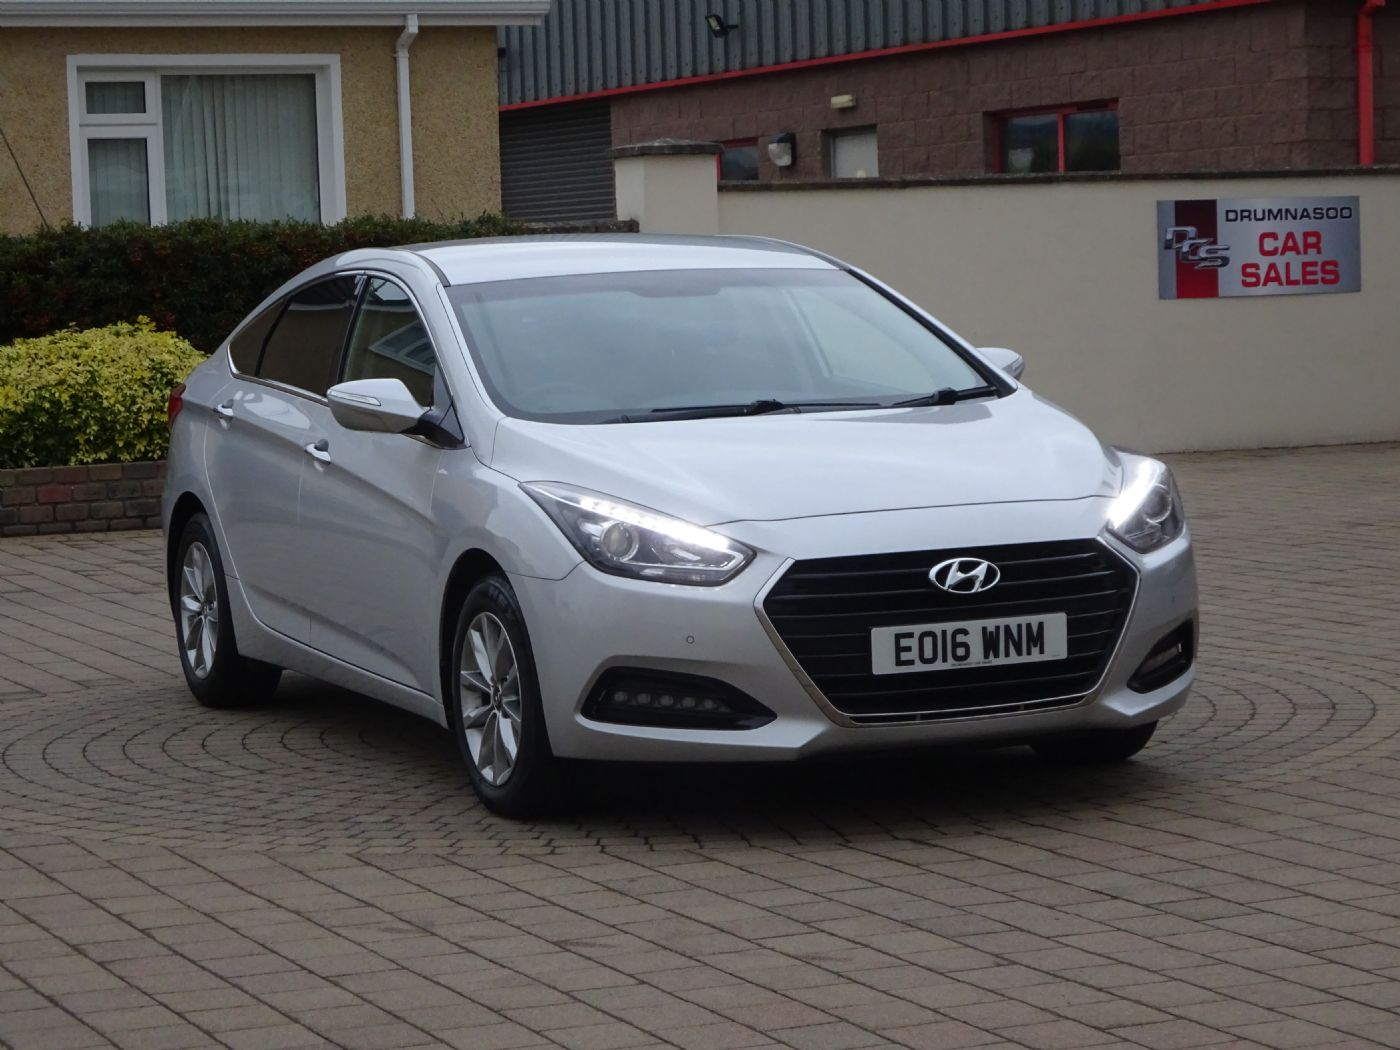 Hyundai I40 SE NAV 1.7 CRDI [115 ] Sat nav, Rear view camera